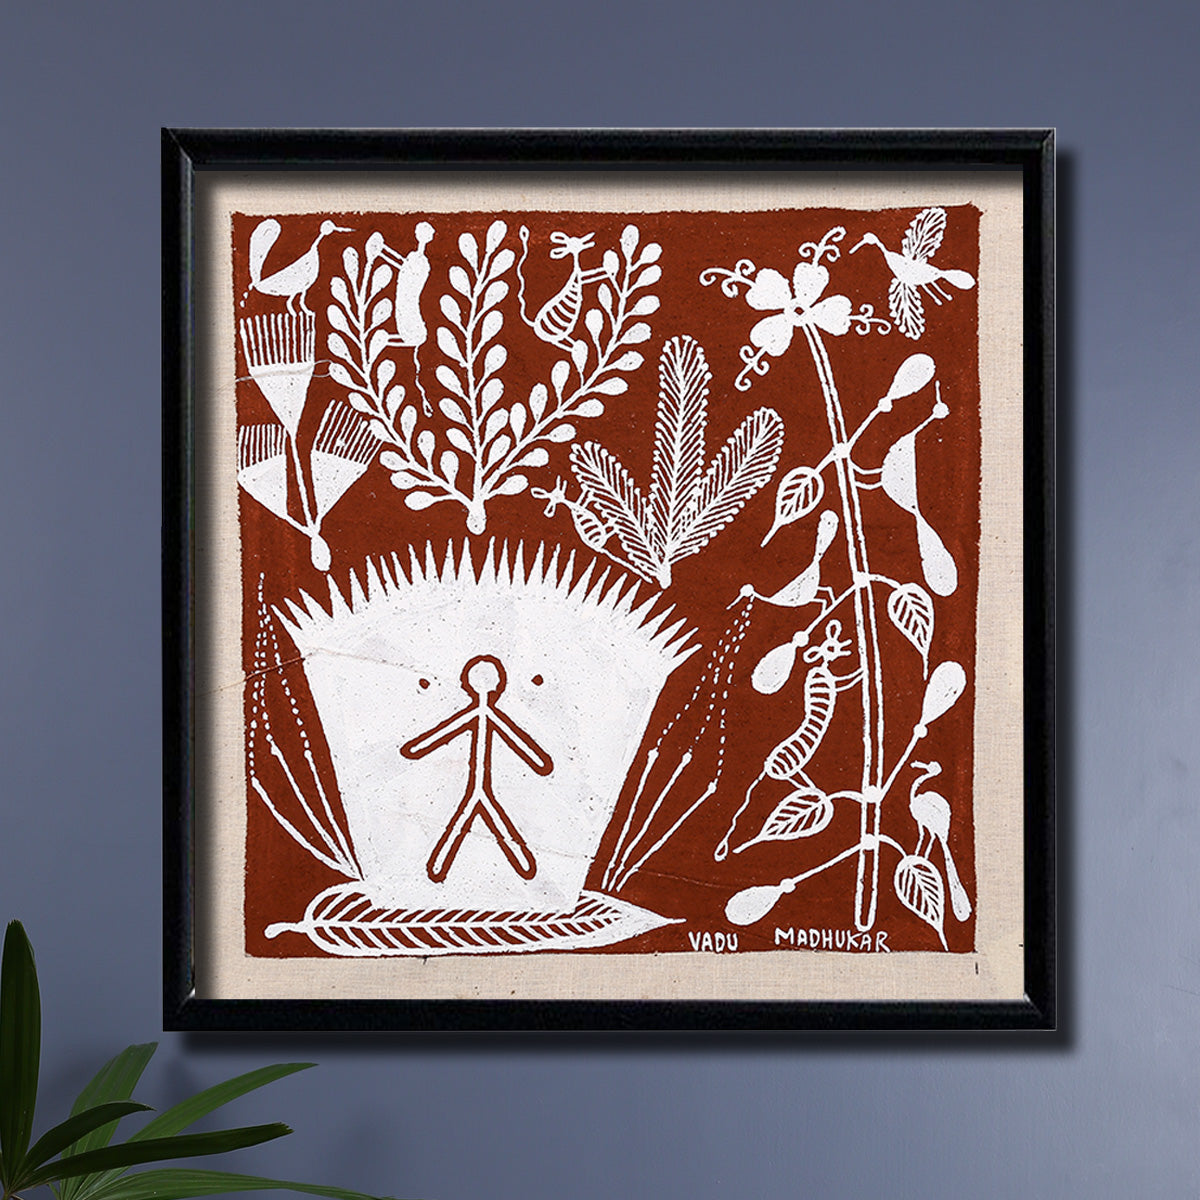 Tribal warli painting of an abstract theme by madhukar vadu india kal hover to zoom thecheapjerseys Image collections